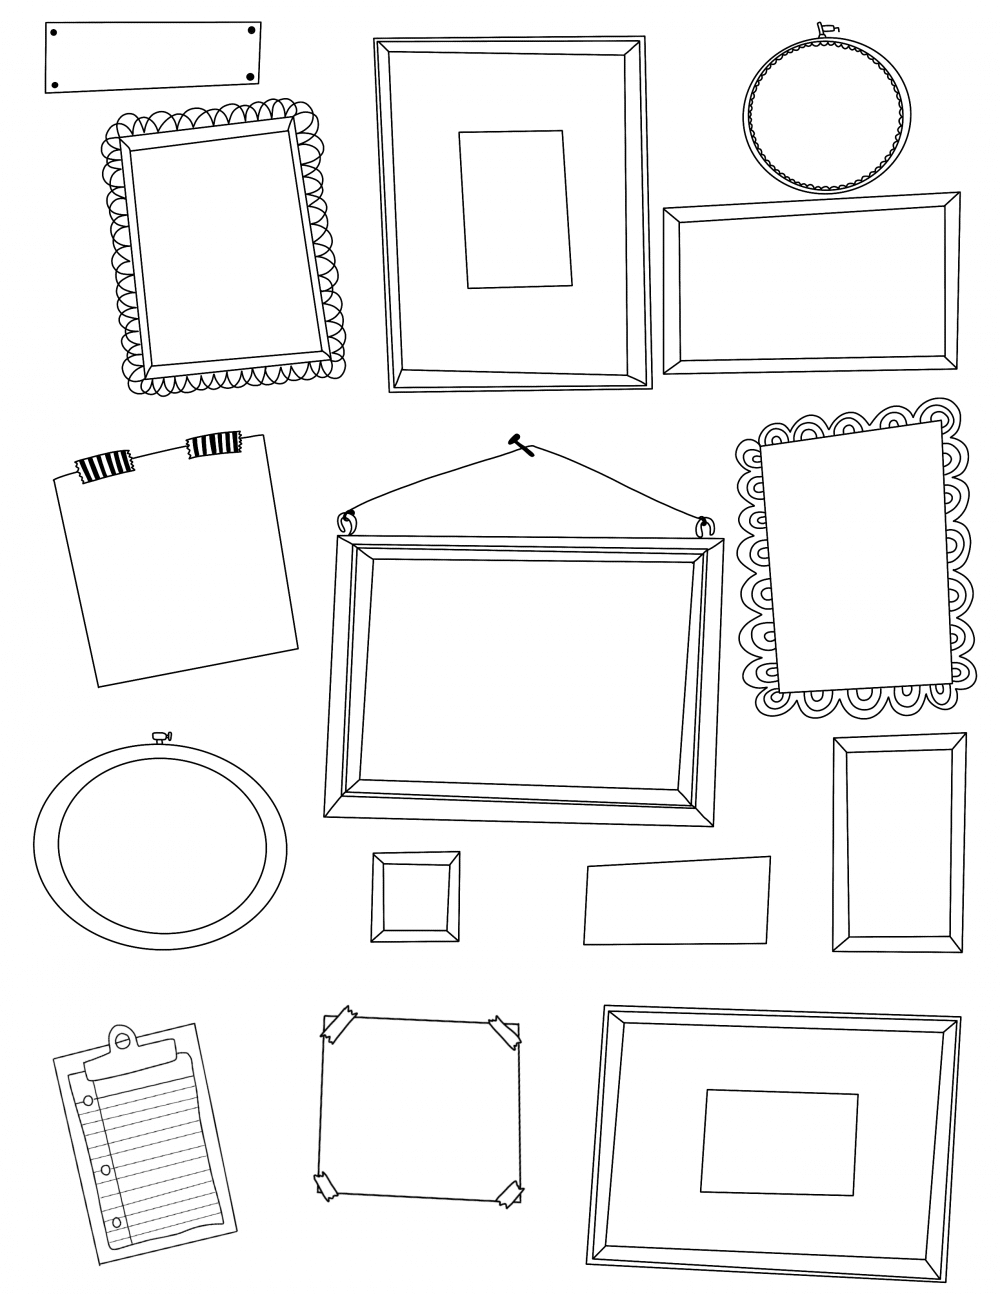 Cool Coloring Pages That You Can Print - Coloring Home   1294x1000